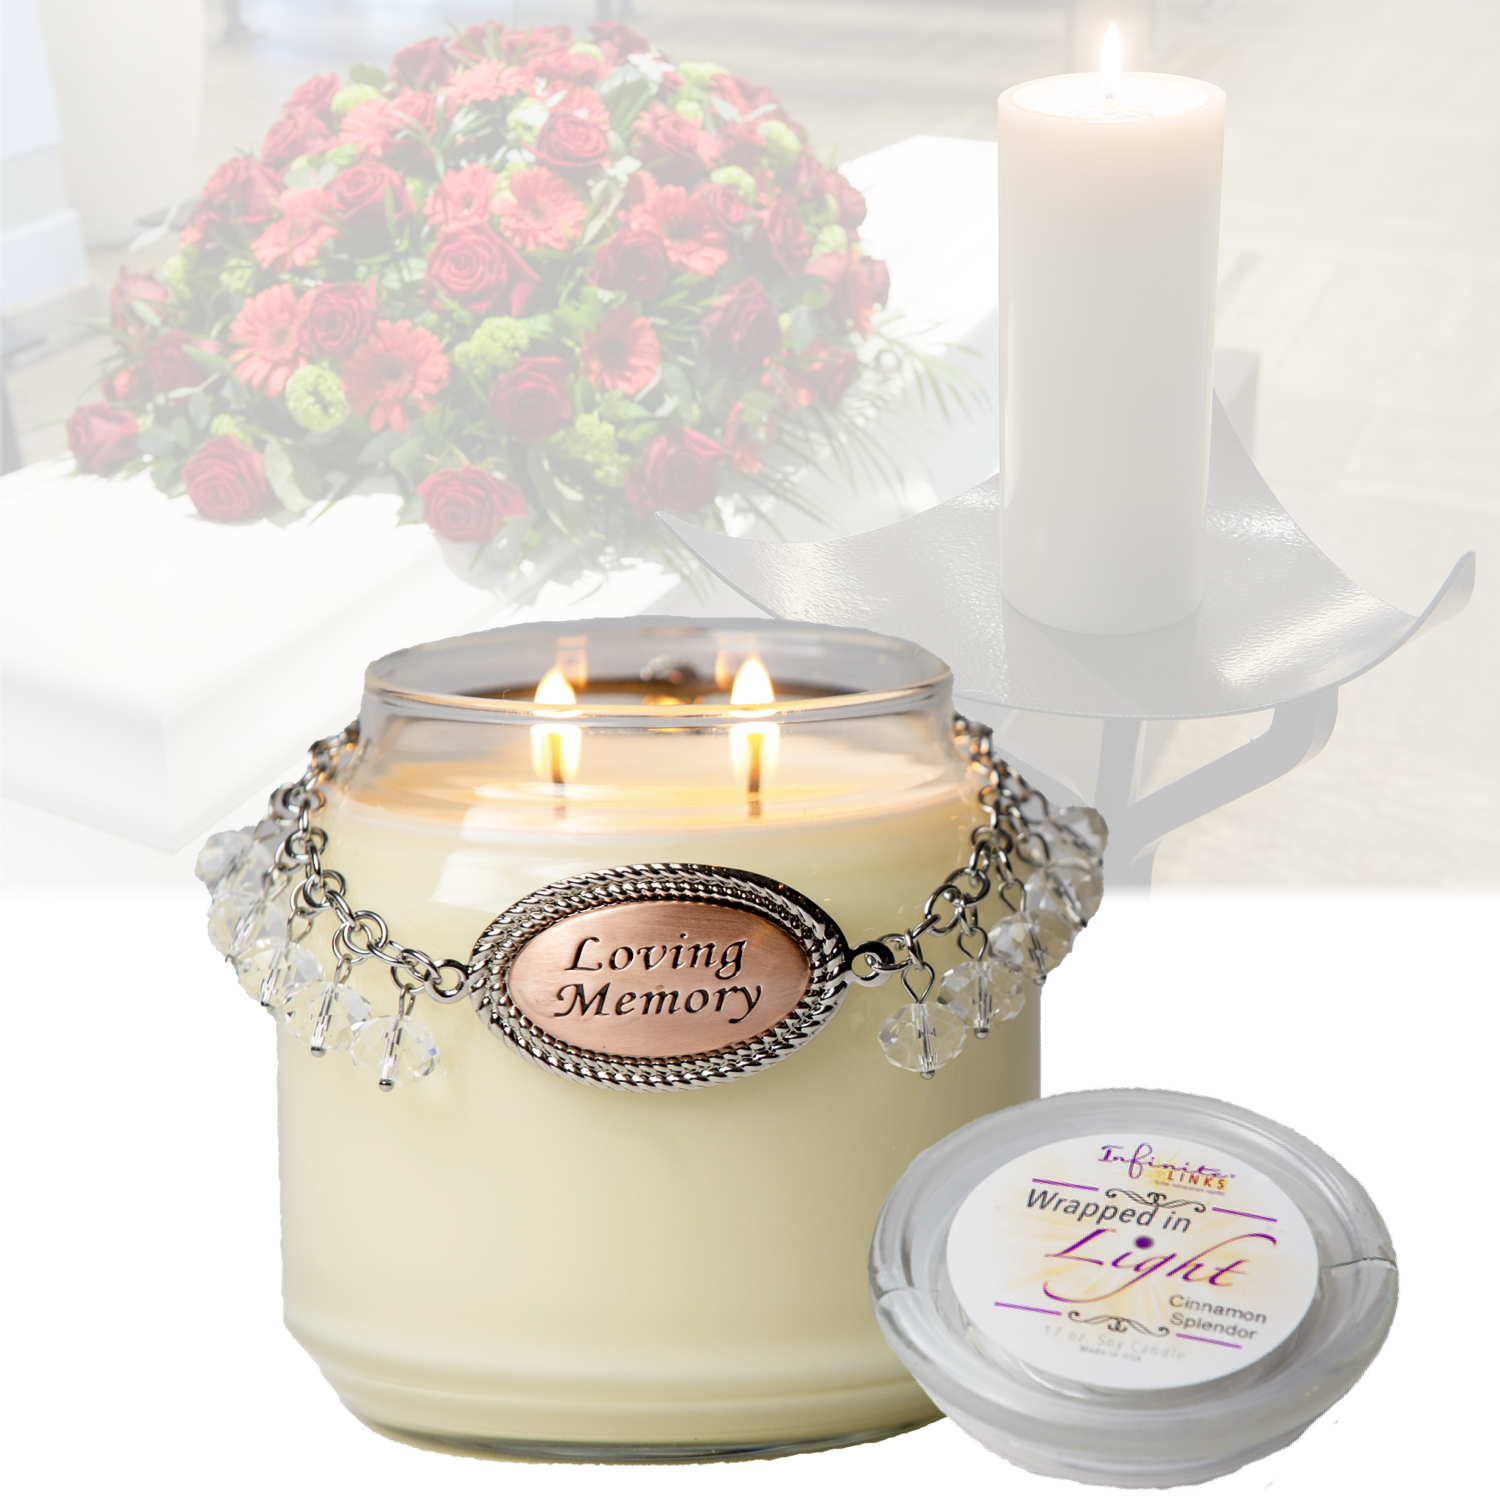 Loving Memory Candle.015